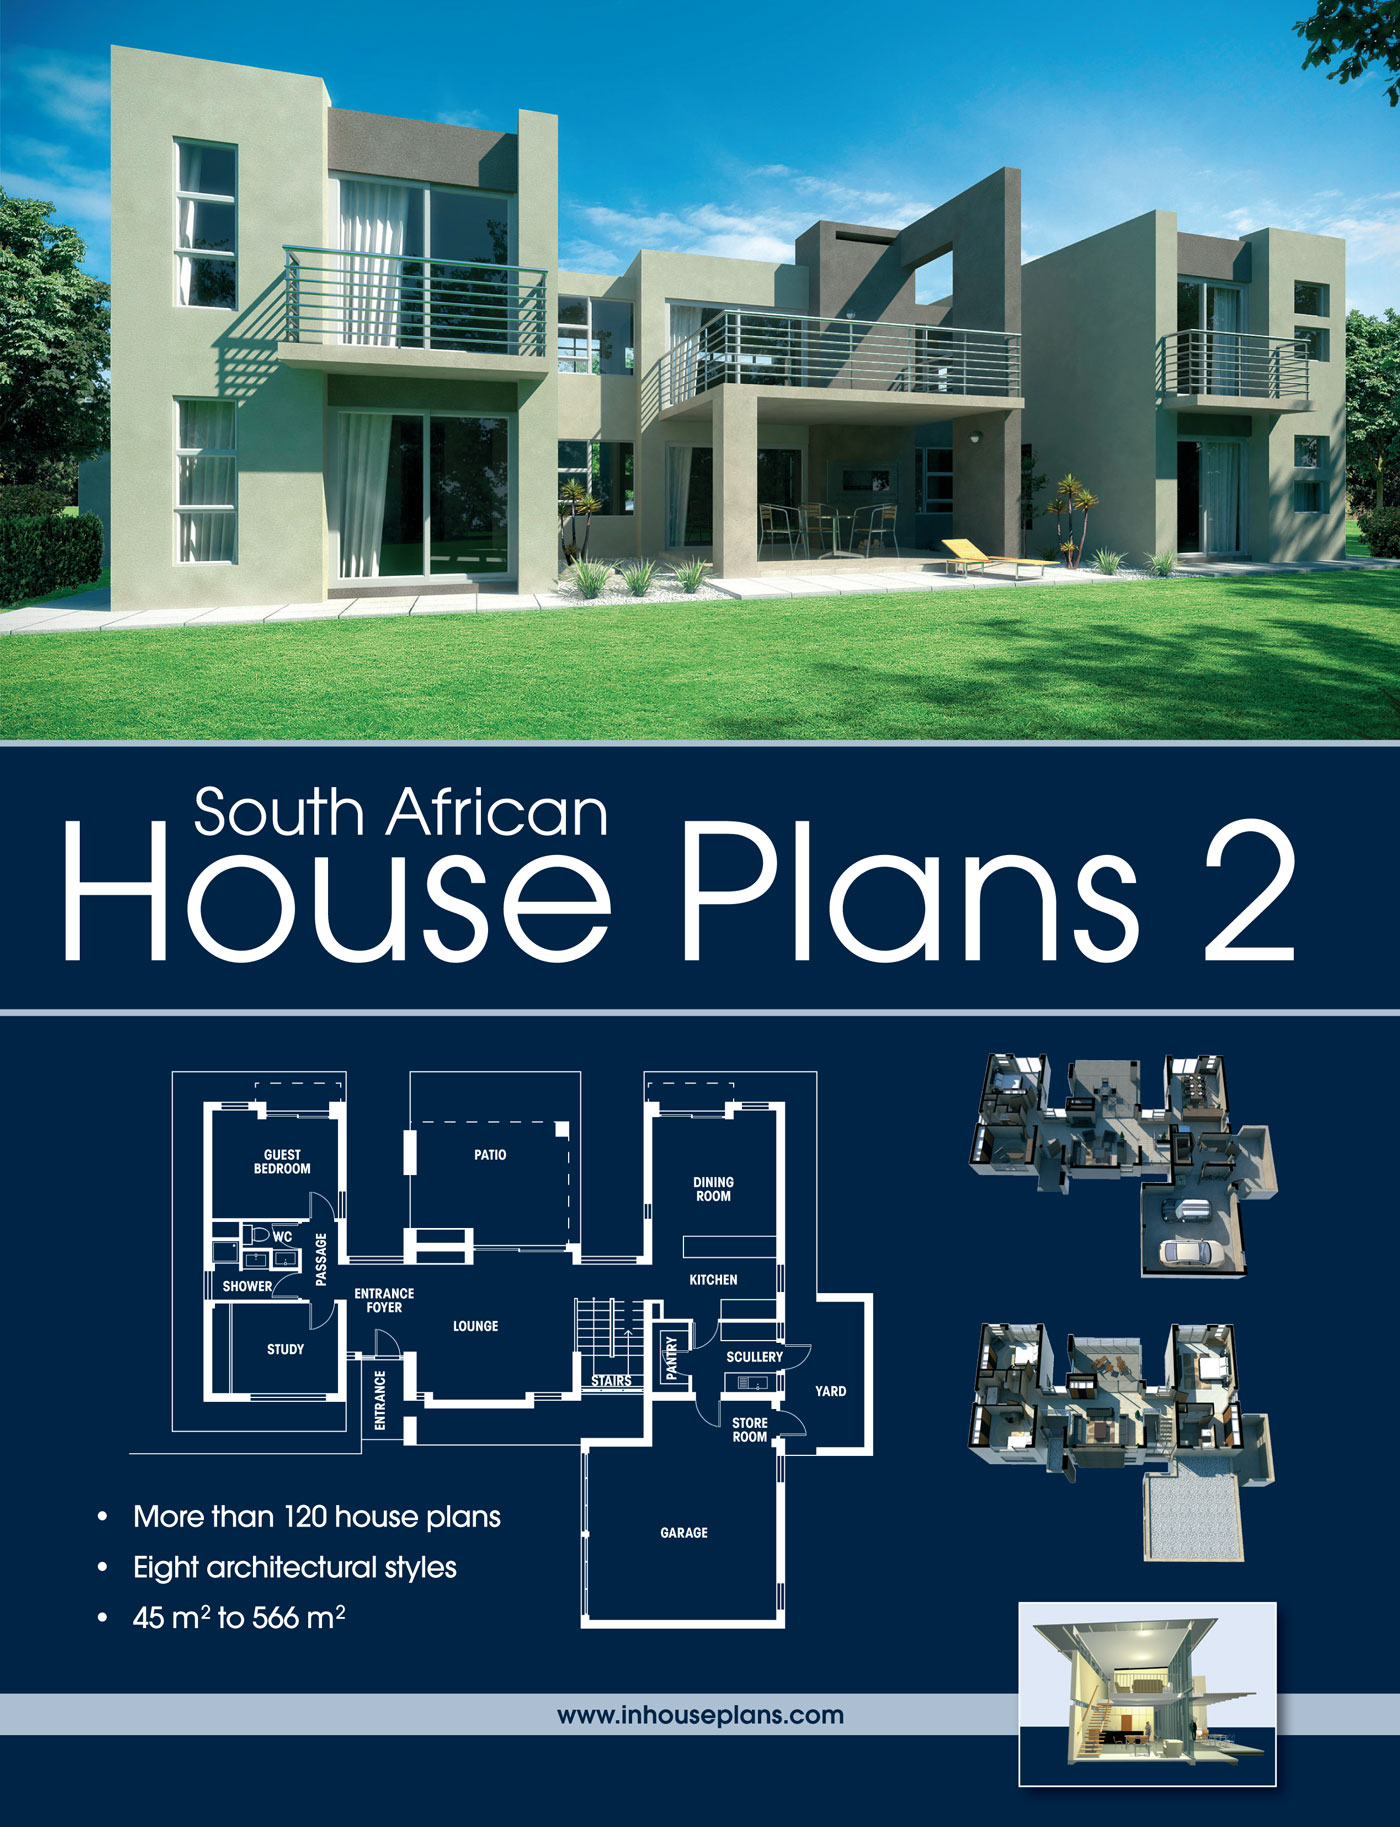 Picture of South African house plans 2